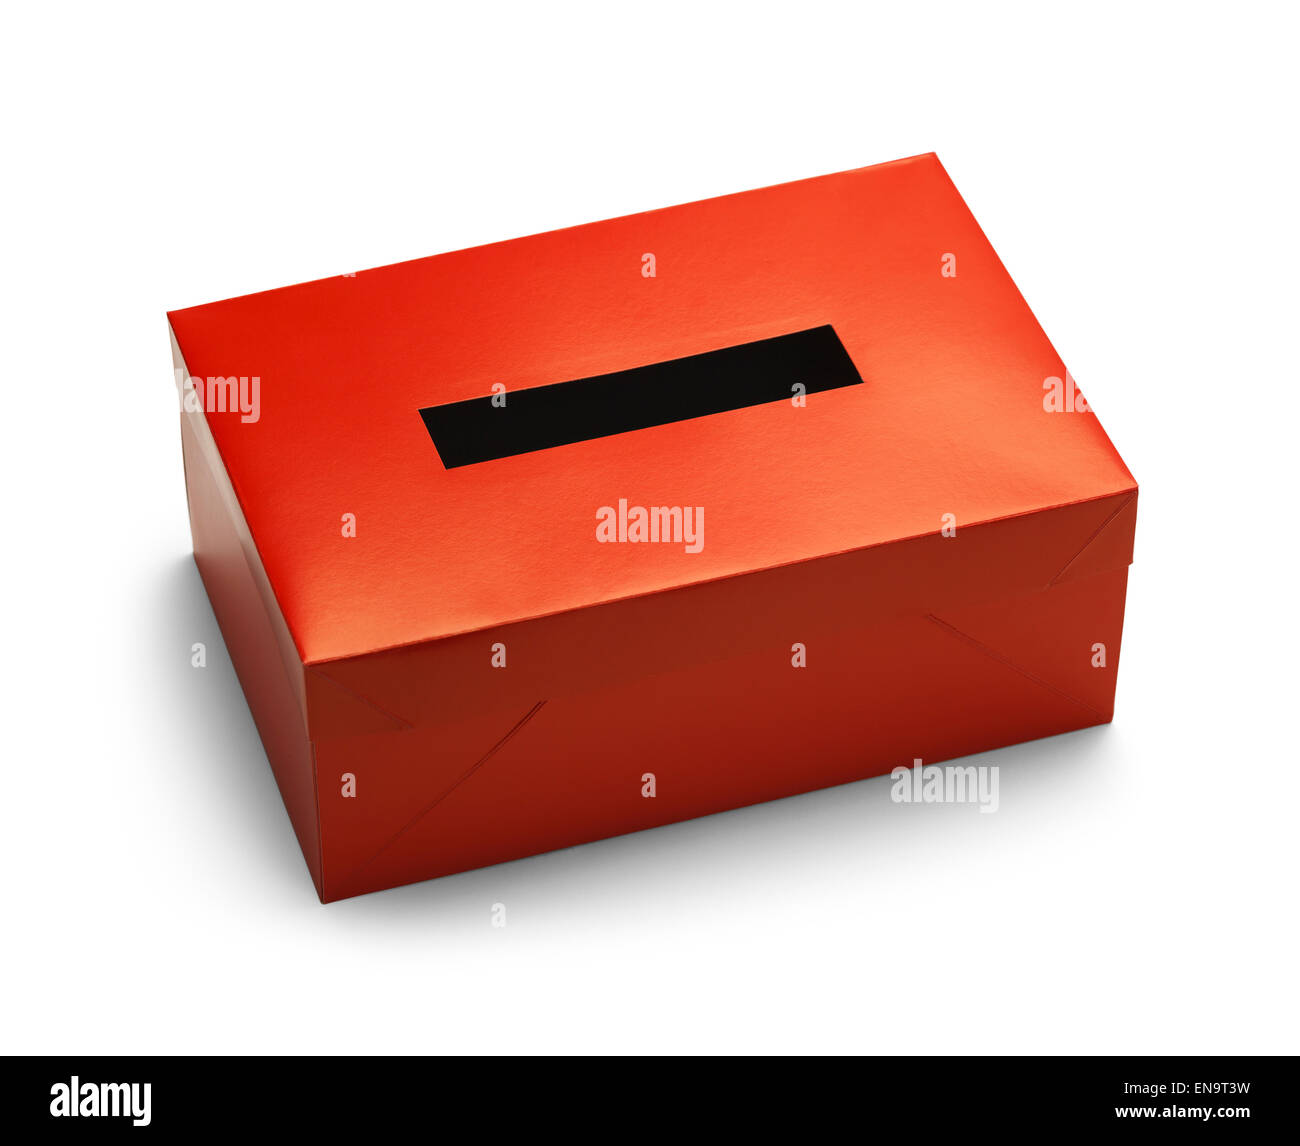 Empty Red Voting Box Isolated on White Background. - Stock Image